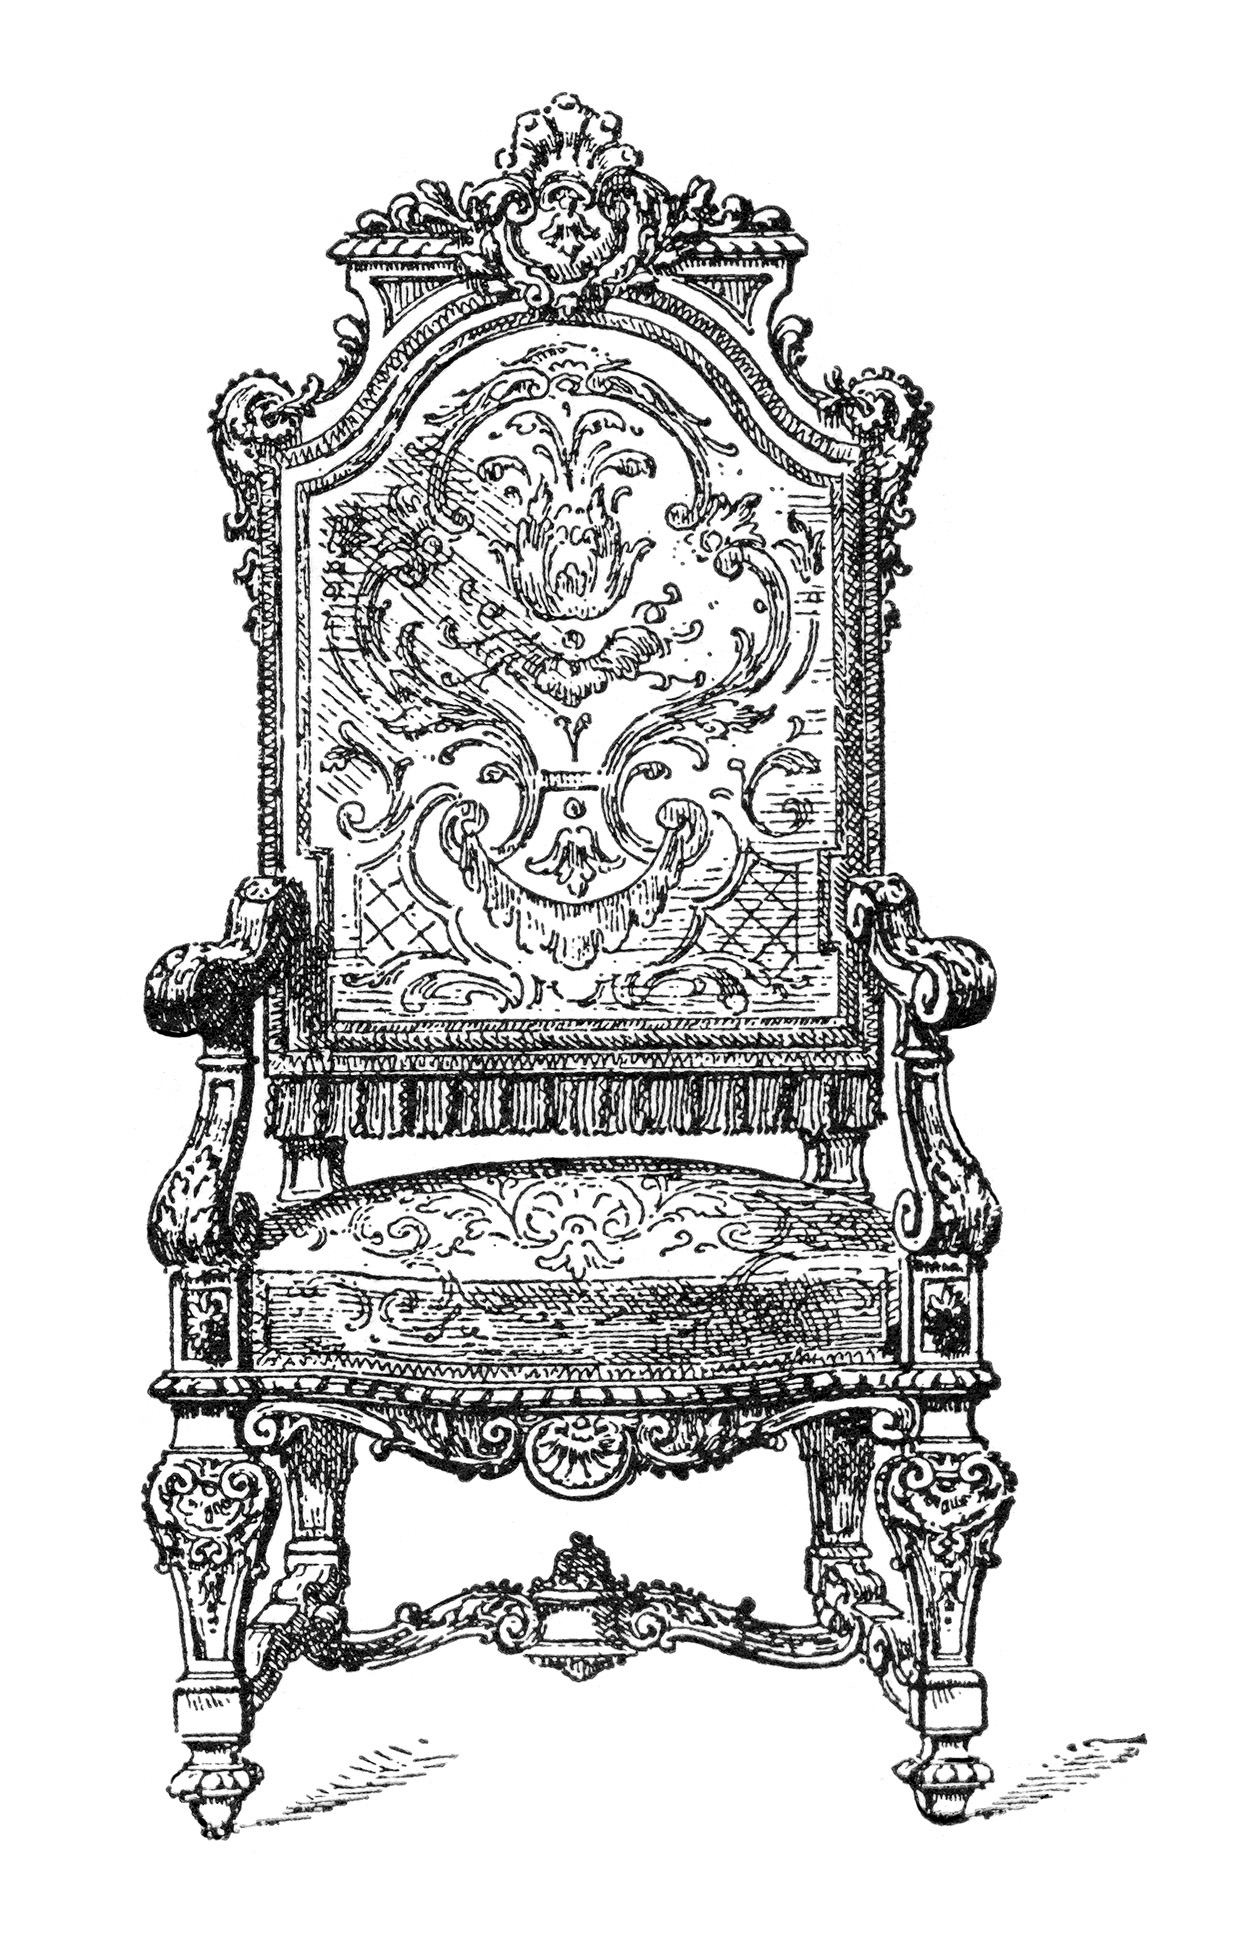 vintage chair clip art, franz meyer image, black and white clipart, antique furniture illustration, ornate chair with arms graphic